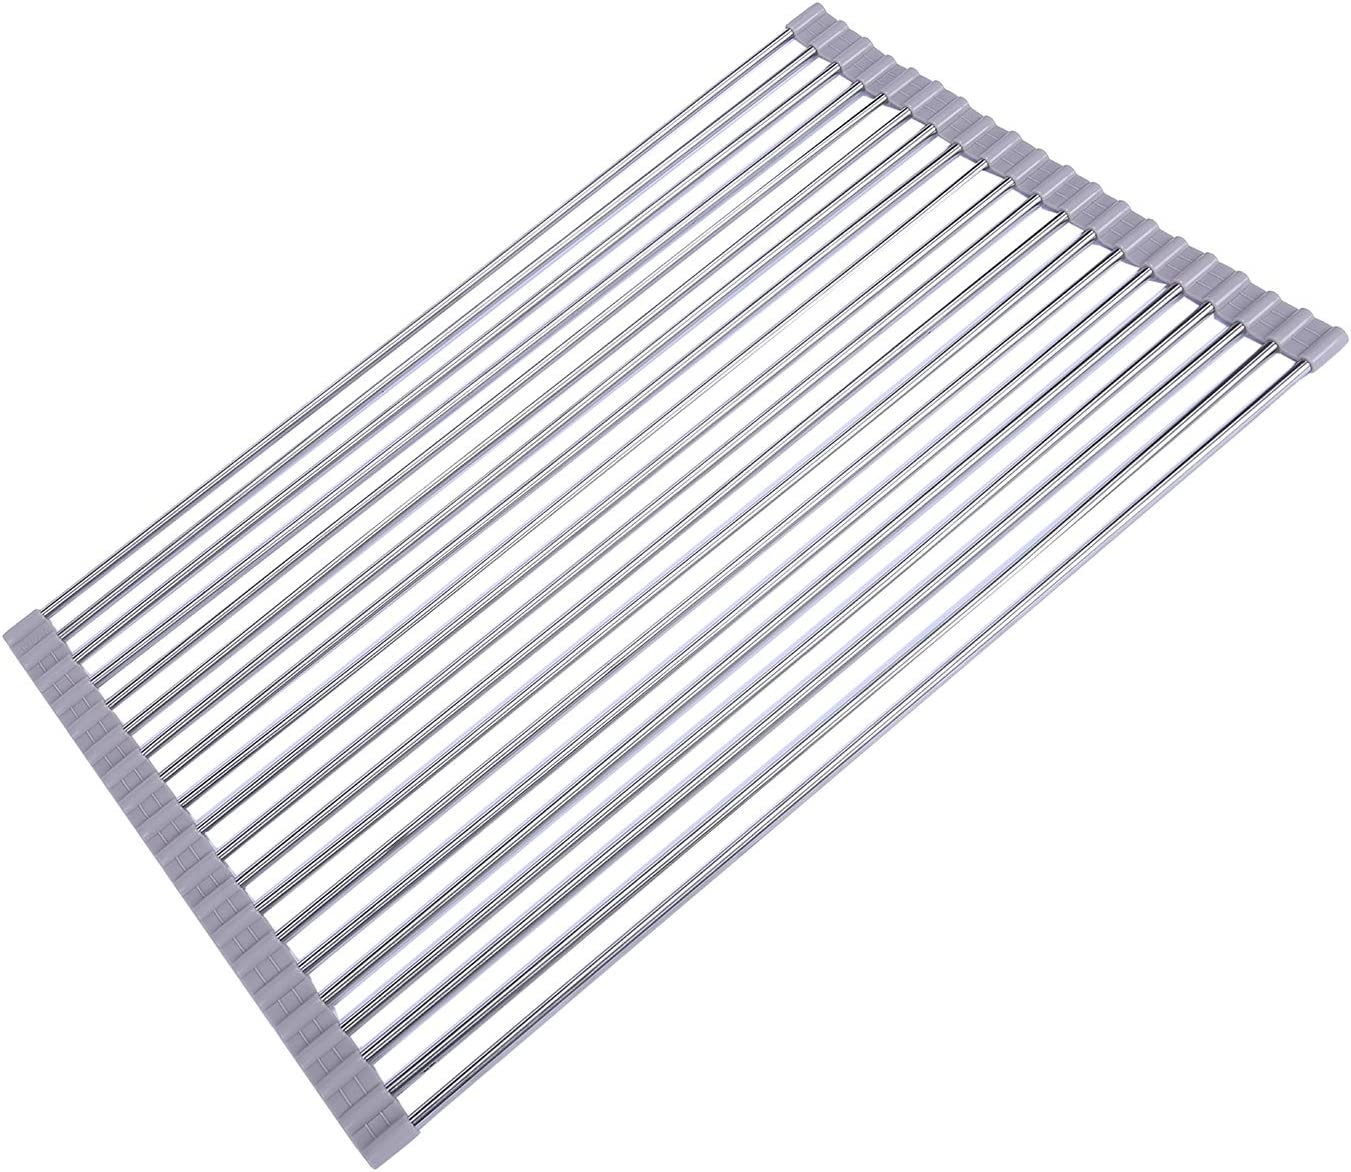 """17.8"""" x 14.2"""" Wide Roll up Dish Drying Rack over the Sink Folding Dish Rack Portable Dish Drainers for Kitchen Sink Counter Roll-up Drying Rack RV Foldable Dish Drying Rack By Ahyuan (Warm Grey)"""